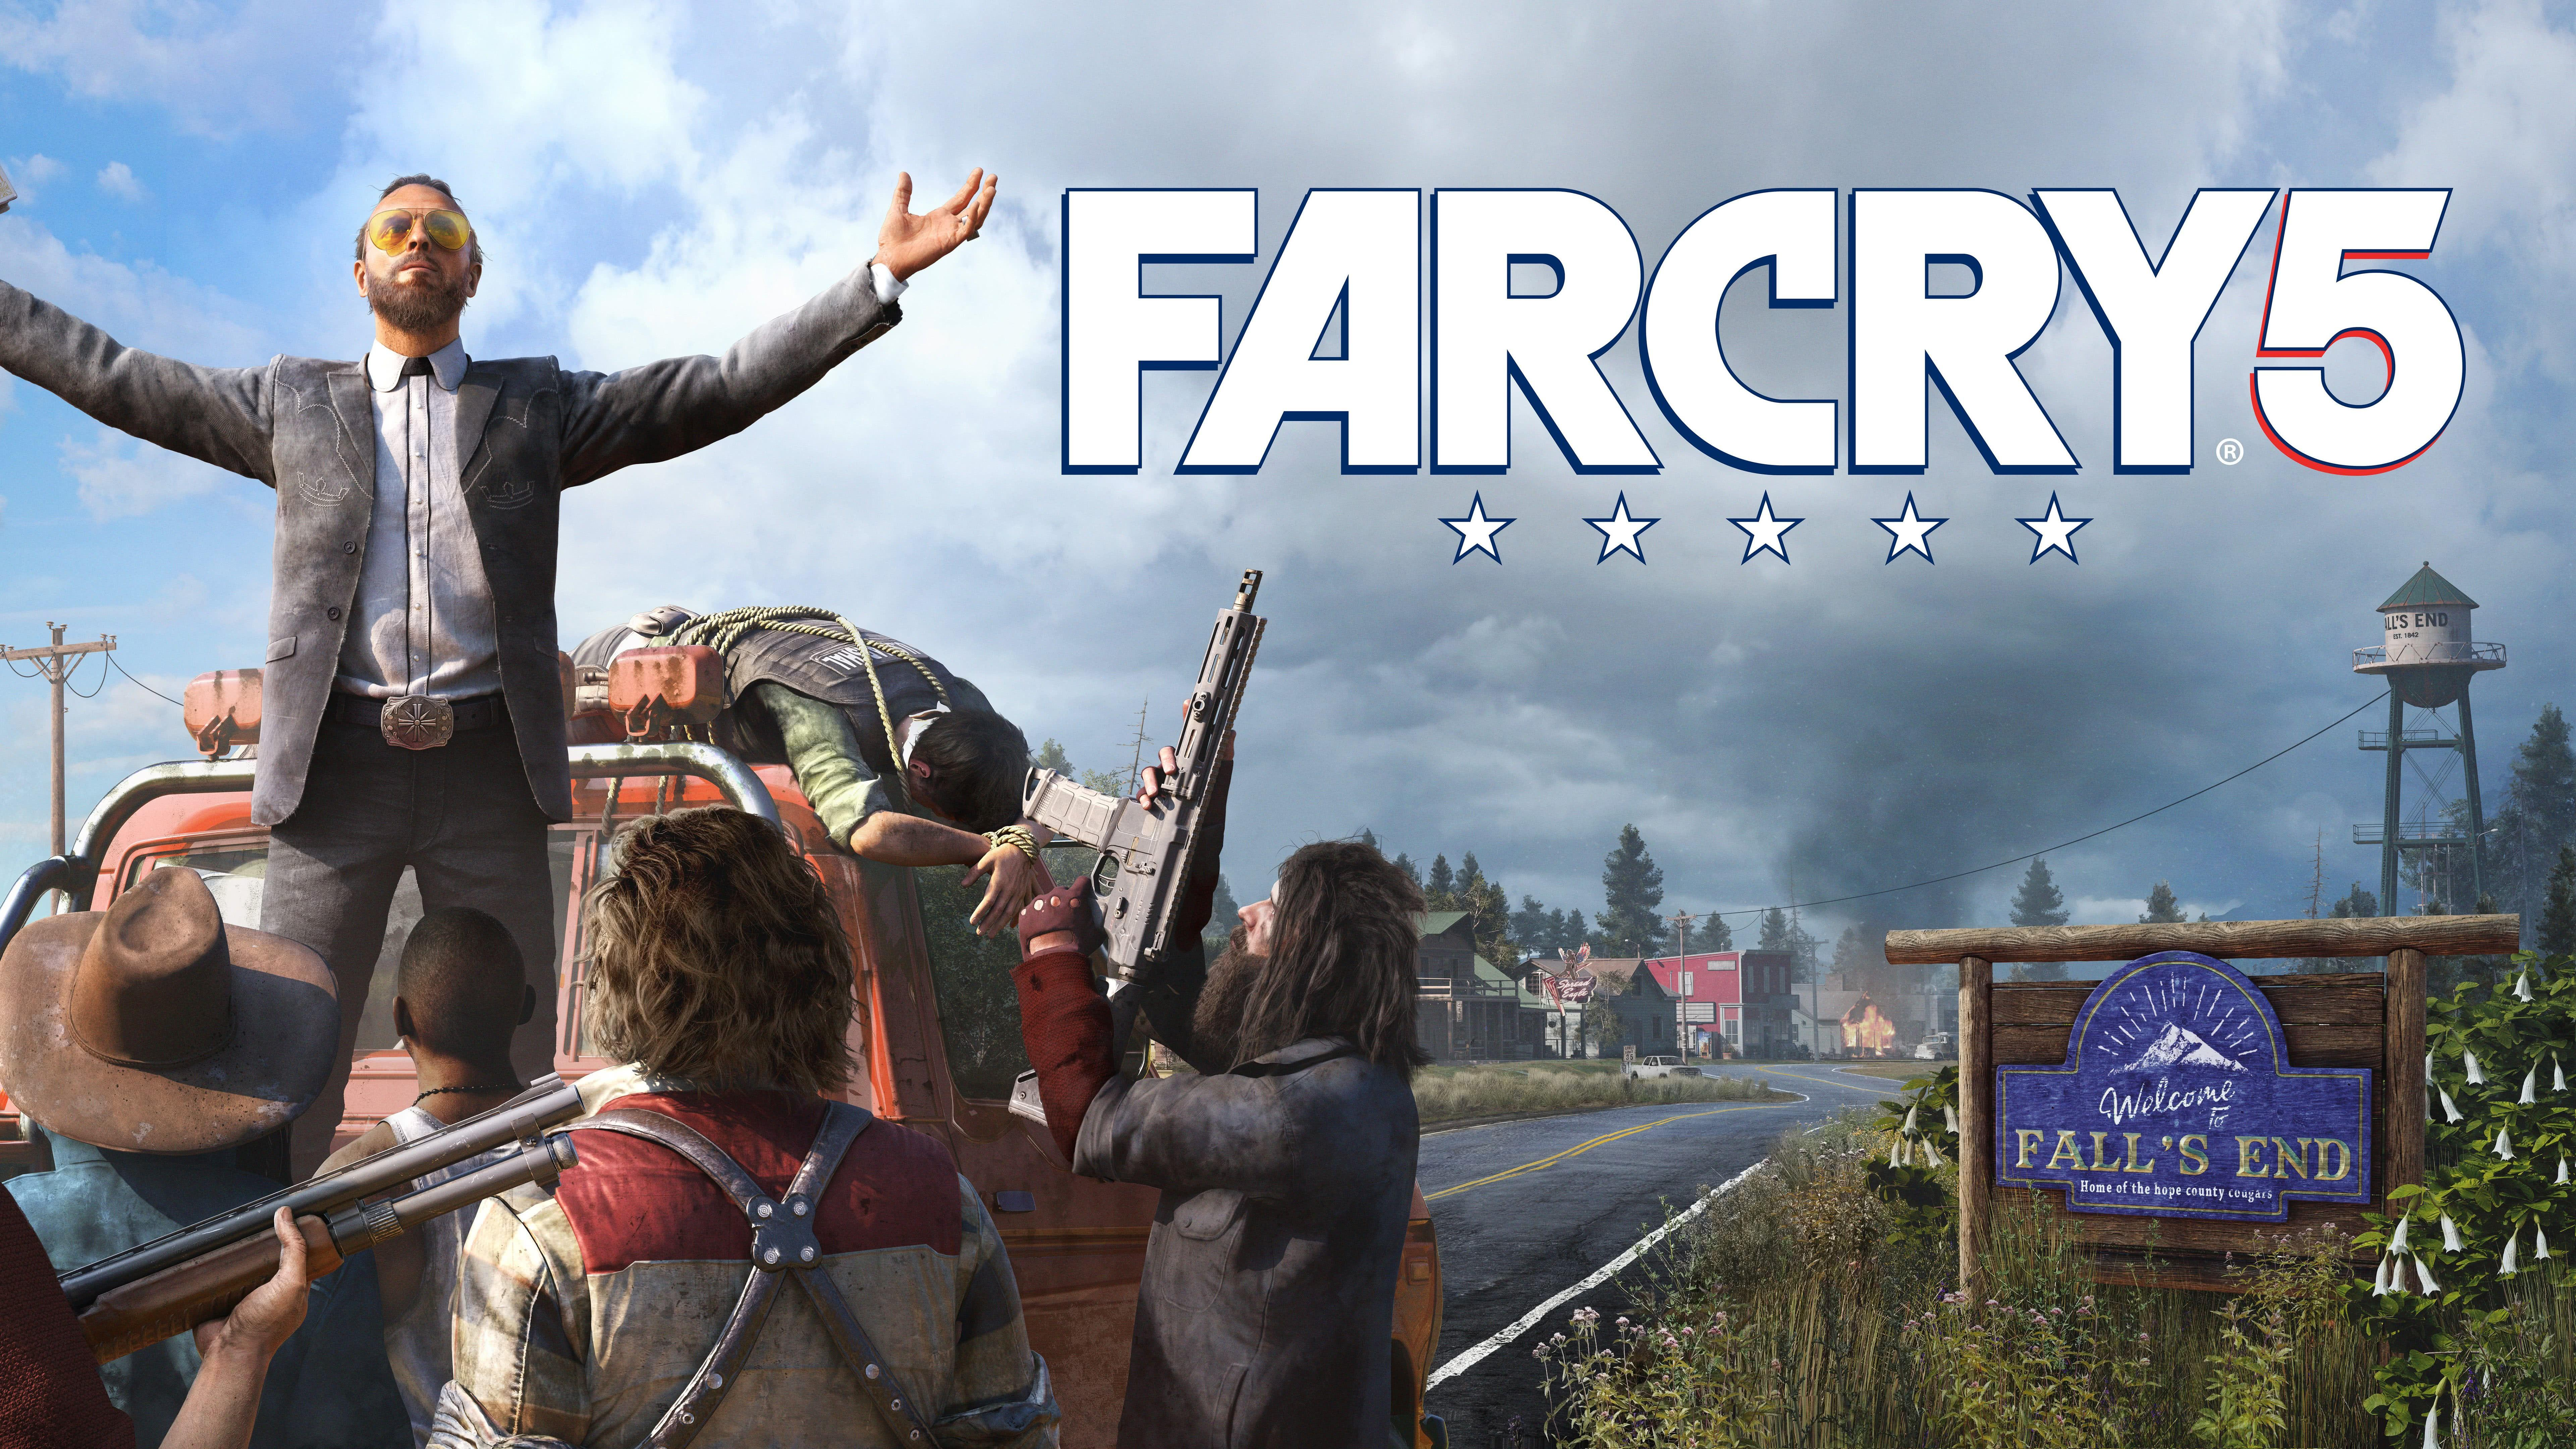 Far Cry 5 HD Wallpapers - Wallpaper Cave